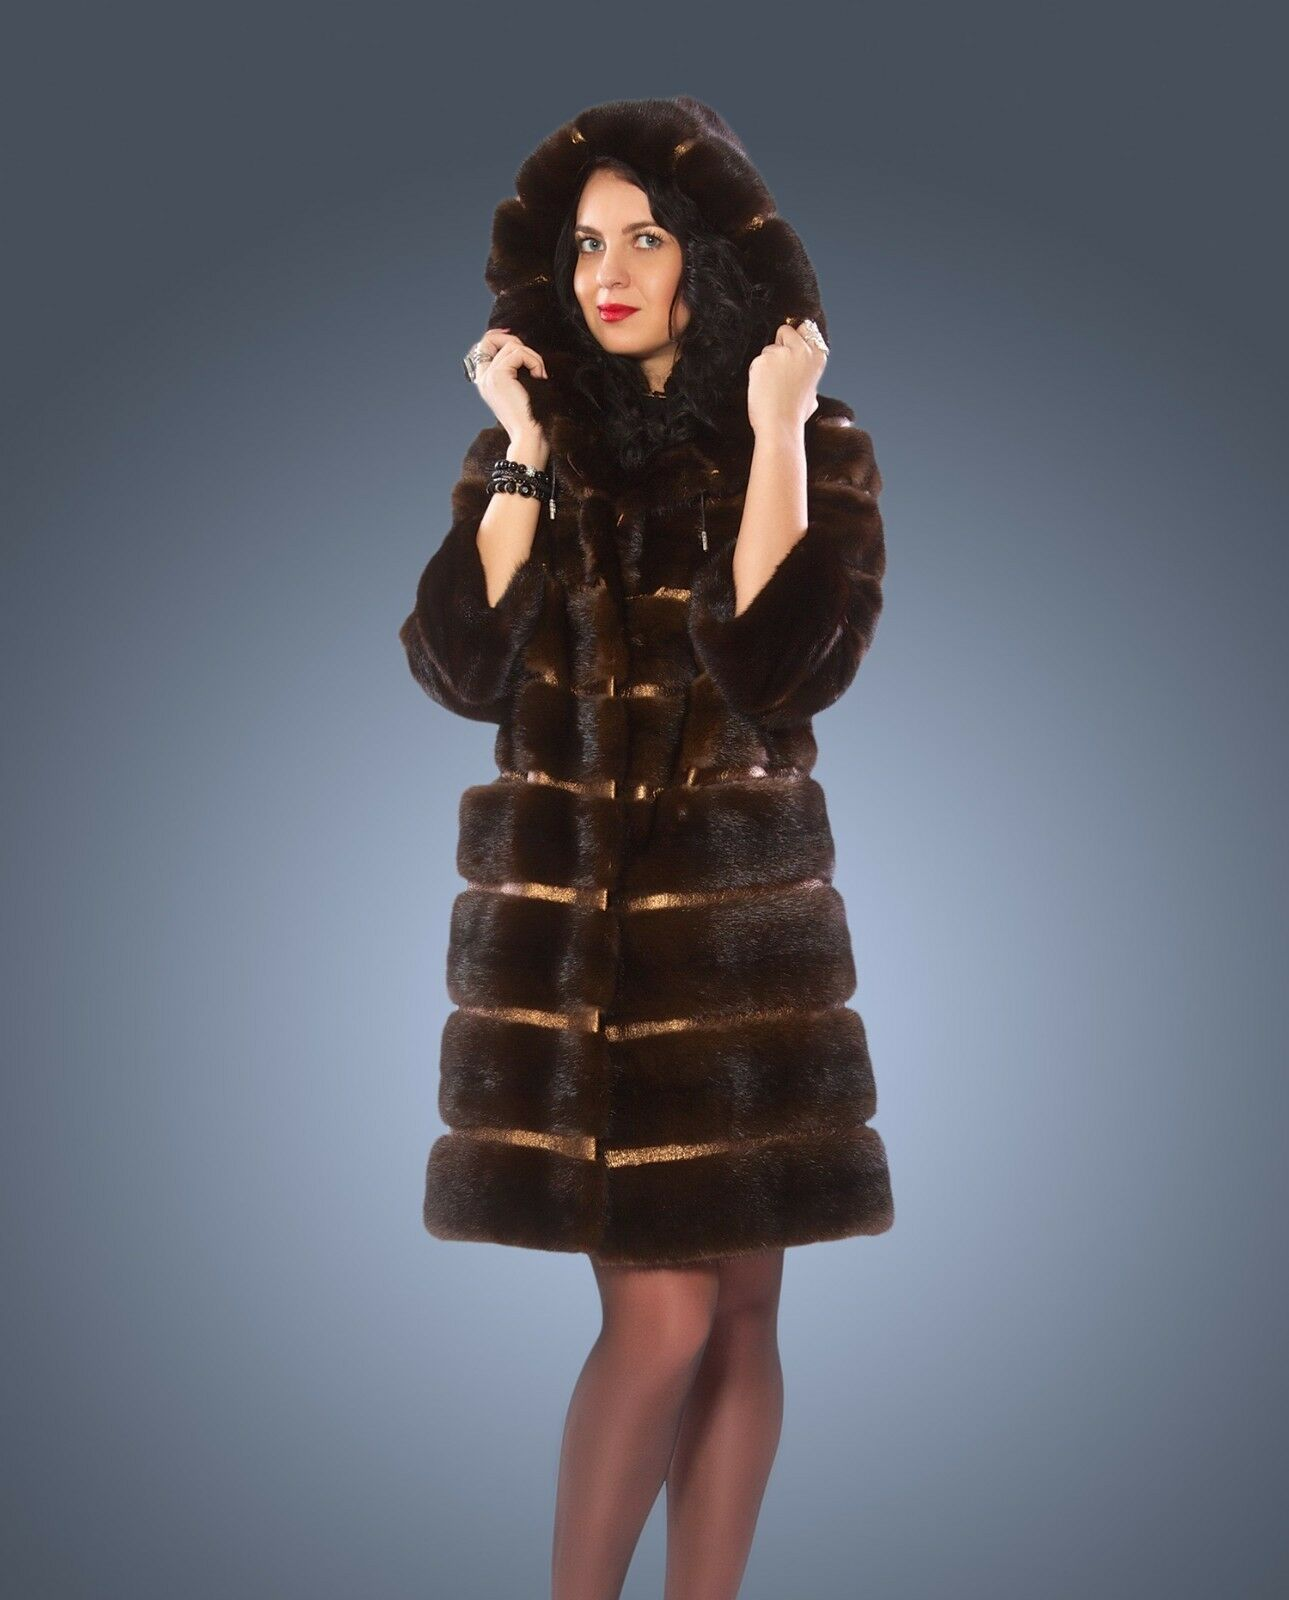 Nerzmantel Saga  Mink Royal Nerz Damenmantel Kapuze Coat Fur Шуба  Норка